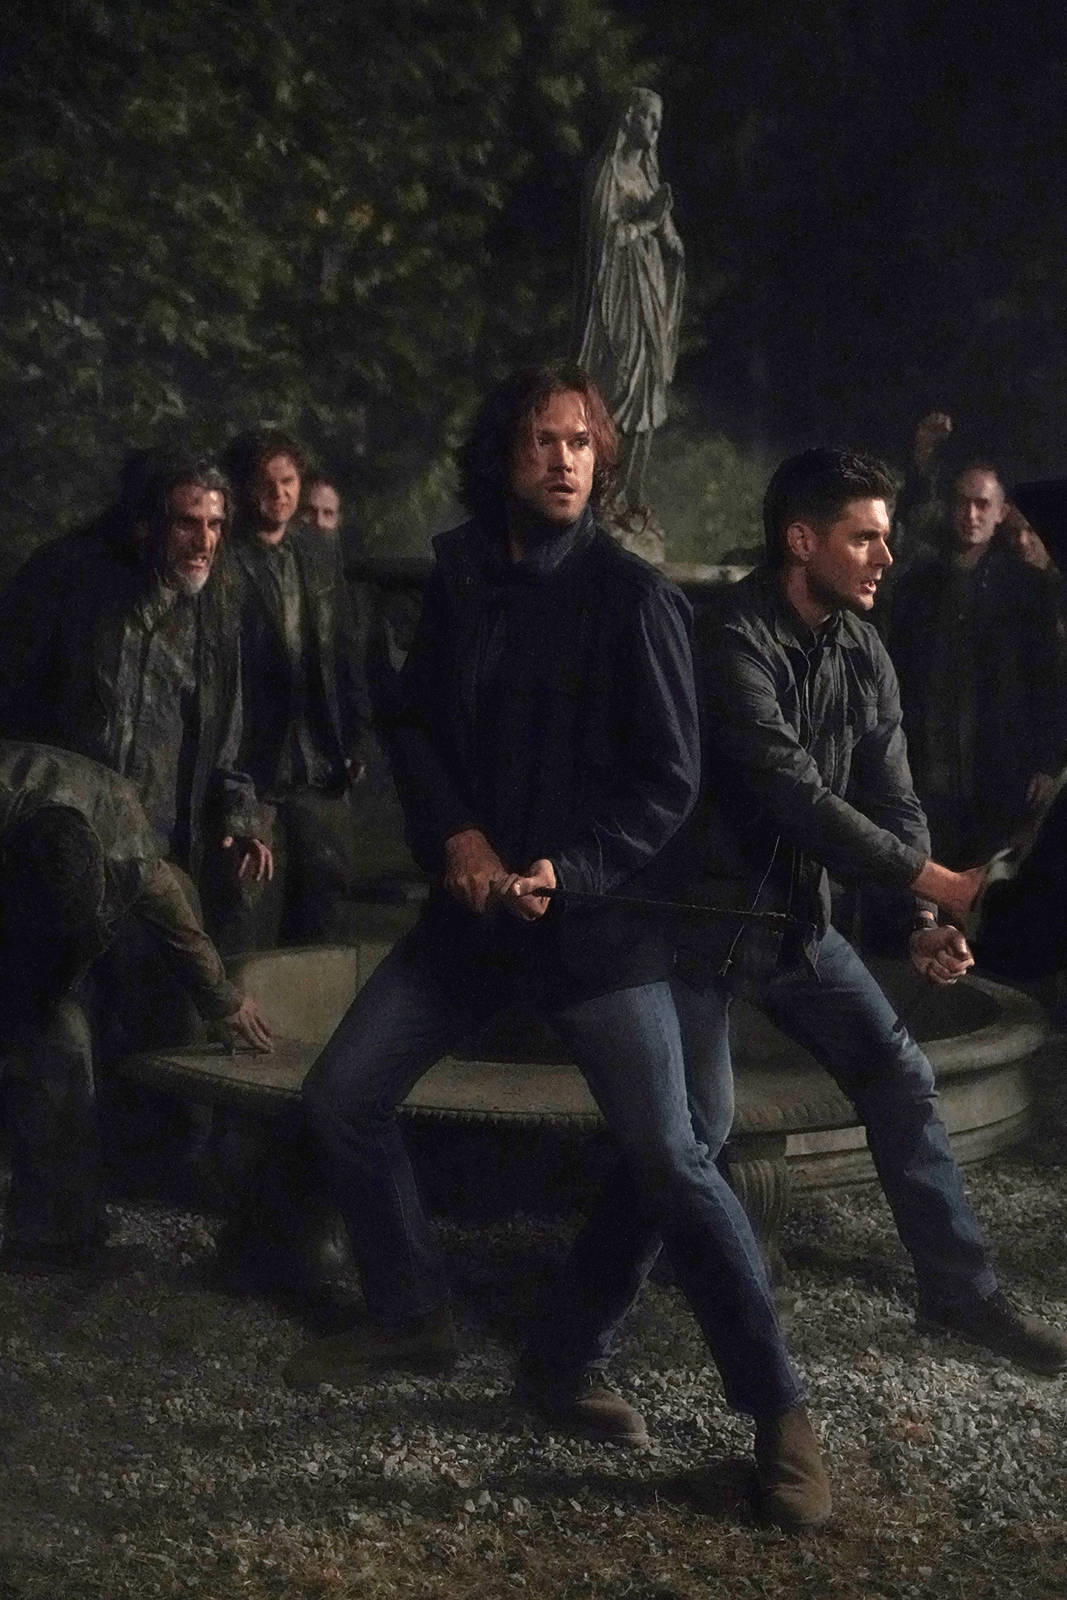 A scene from Supernatural where Sam and Dean battle evil in a cemetery